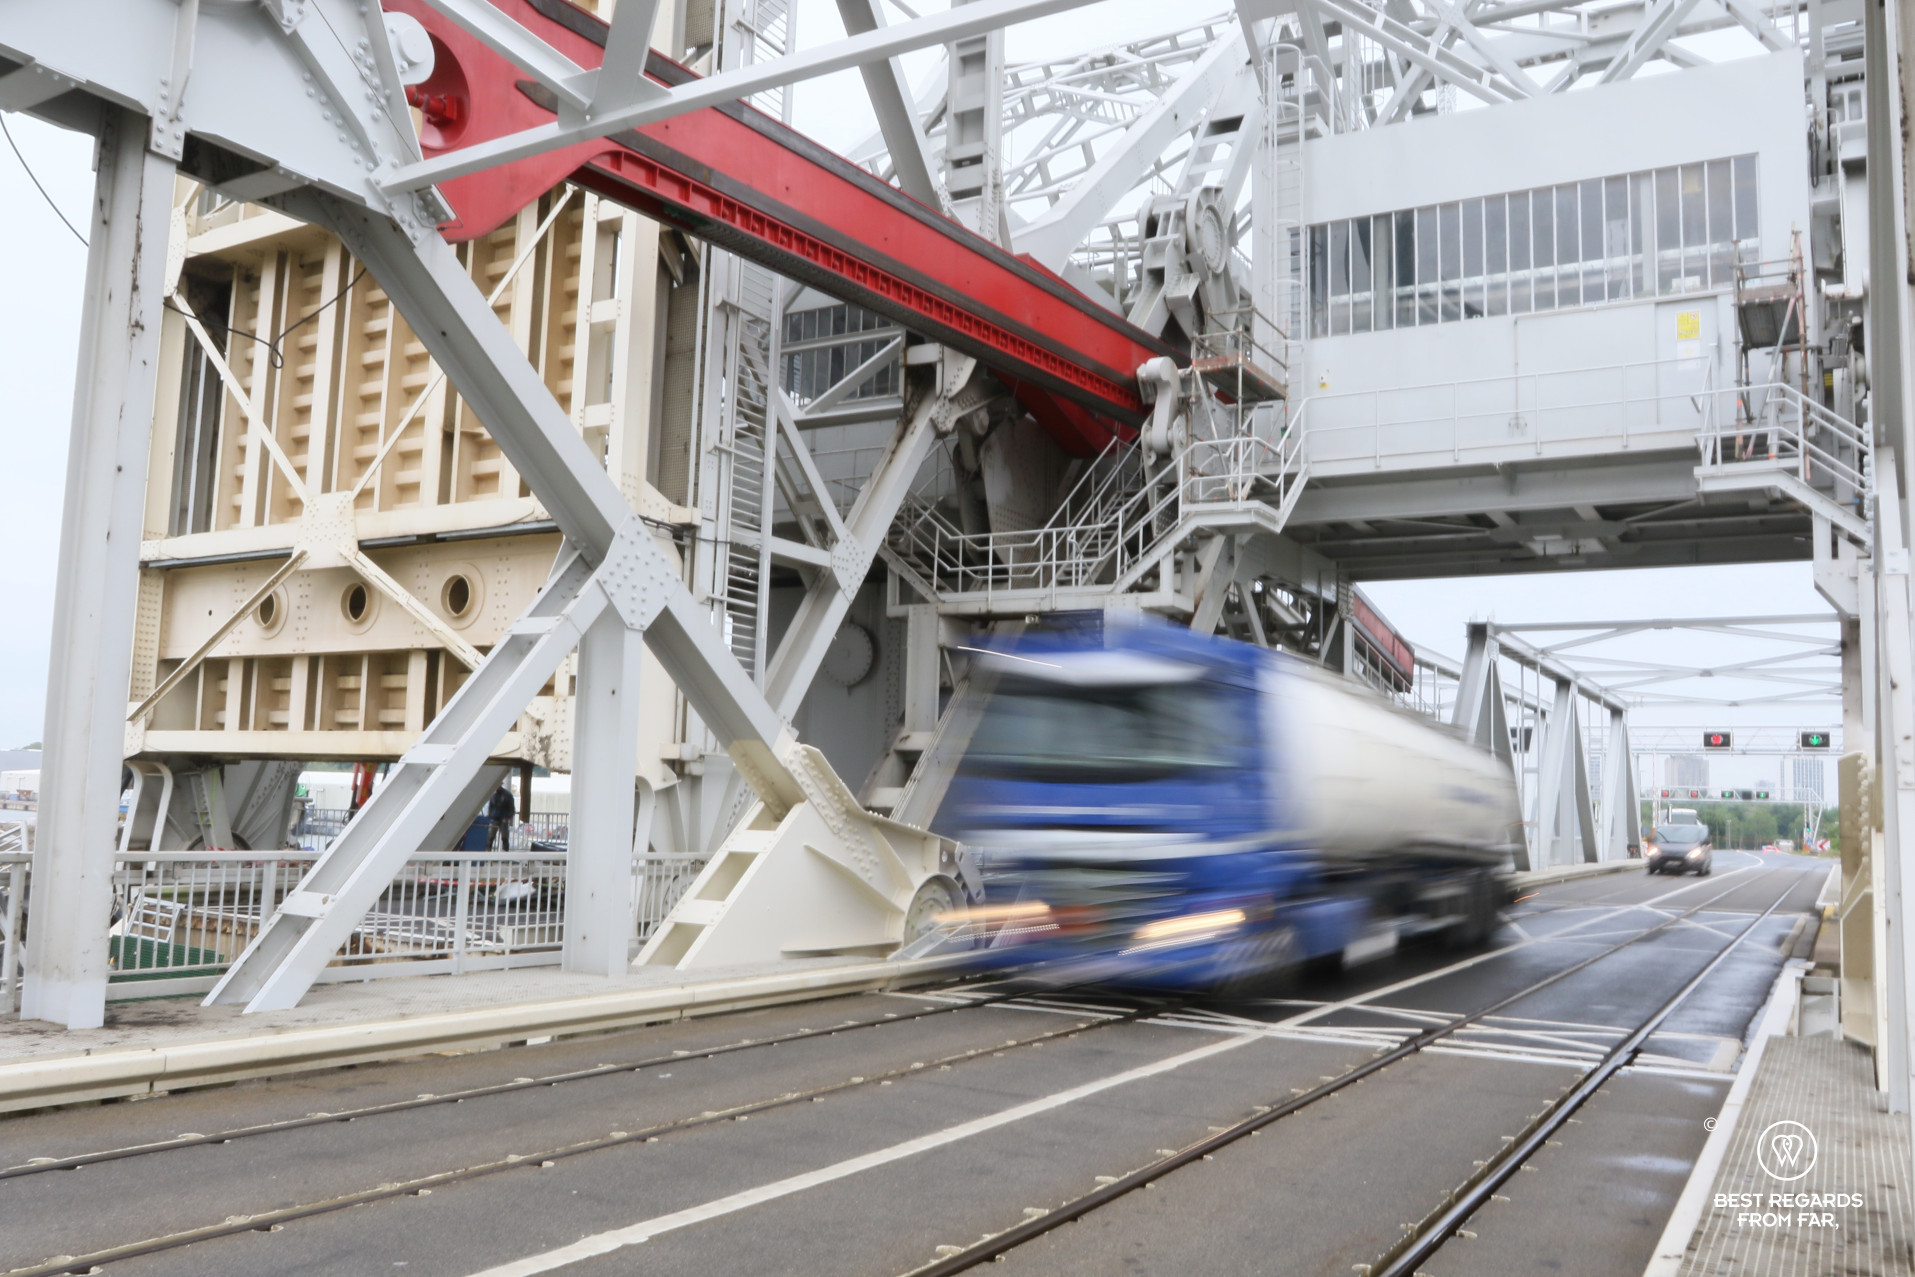 Truck passing fast on a bridge with train tracks in the industrial harbour of Antwerp, Belgium